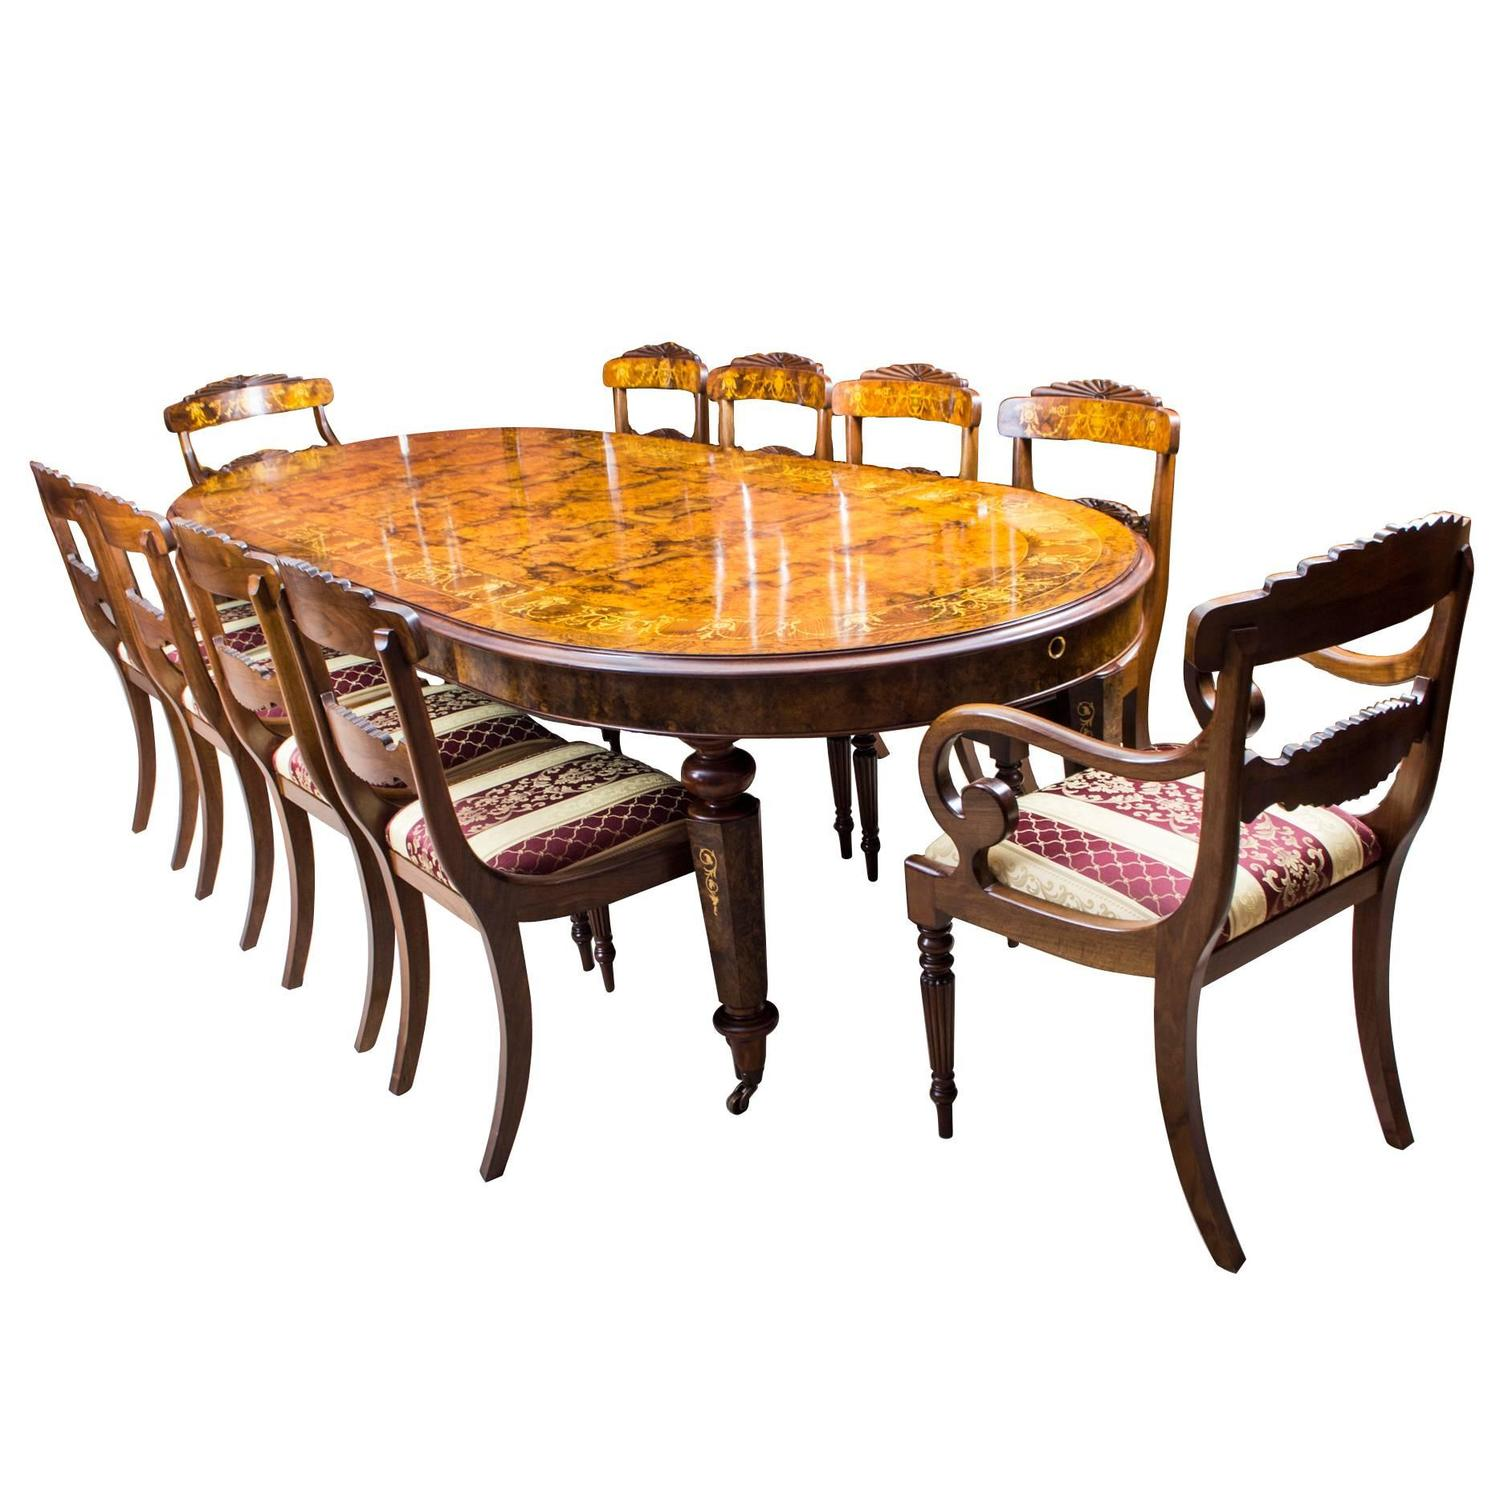 Stunning Bespoke Handmade Burr Walnut Marquetry Dining Table 10 Chairs For  Sale At 1stdibs